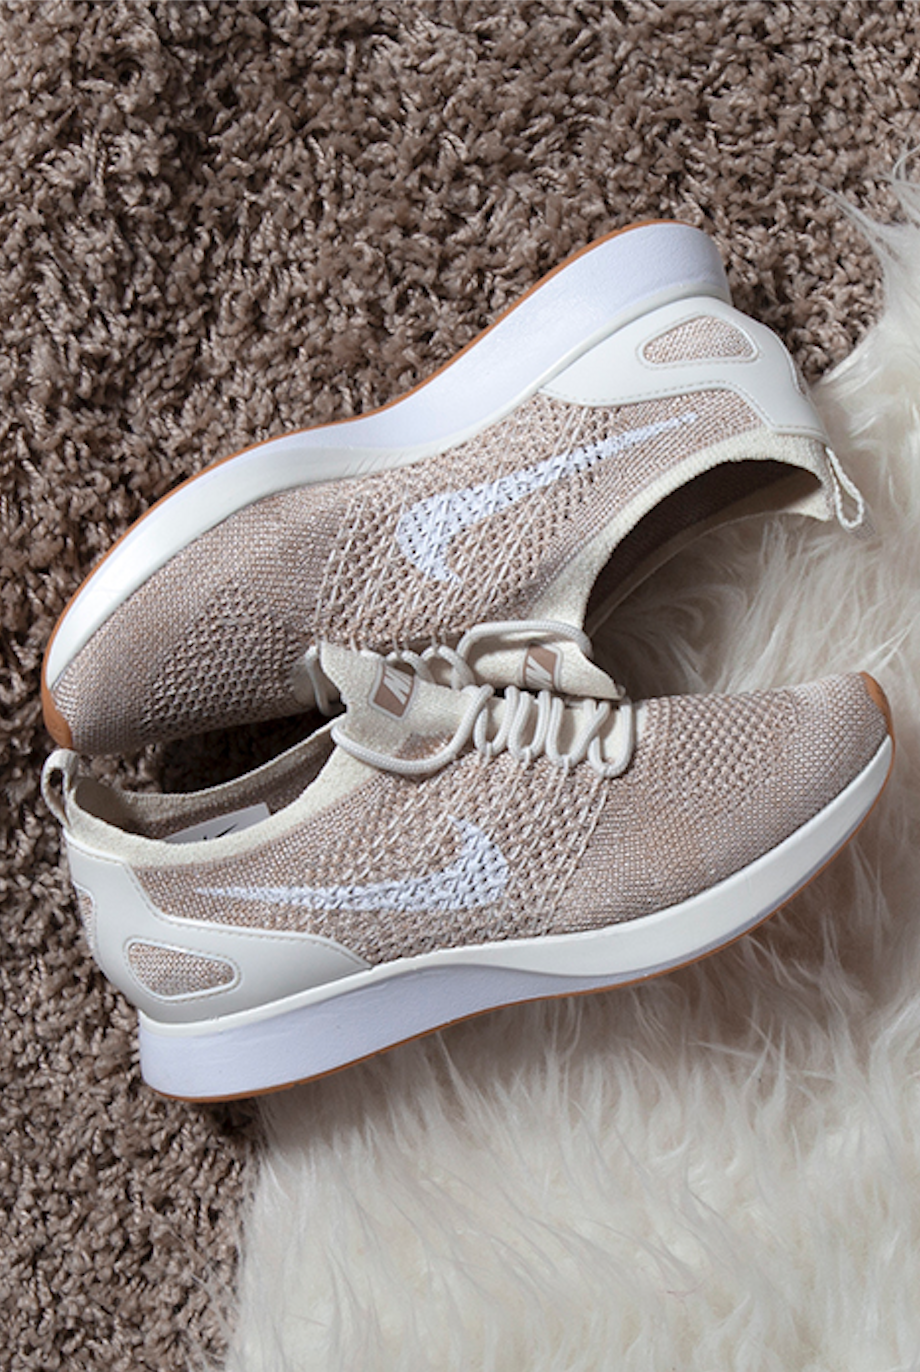 save off 8cfa8 946c5 Nike Air Zoom Mariah Flyknit Racer – Beige White. Cool sneakers on furry  rug.